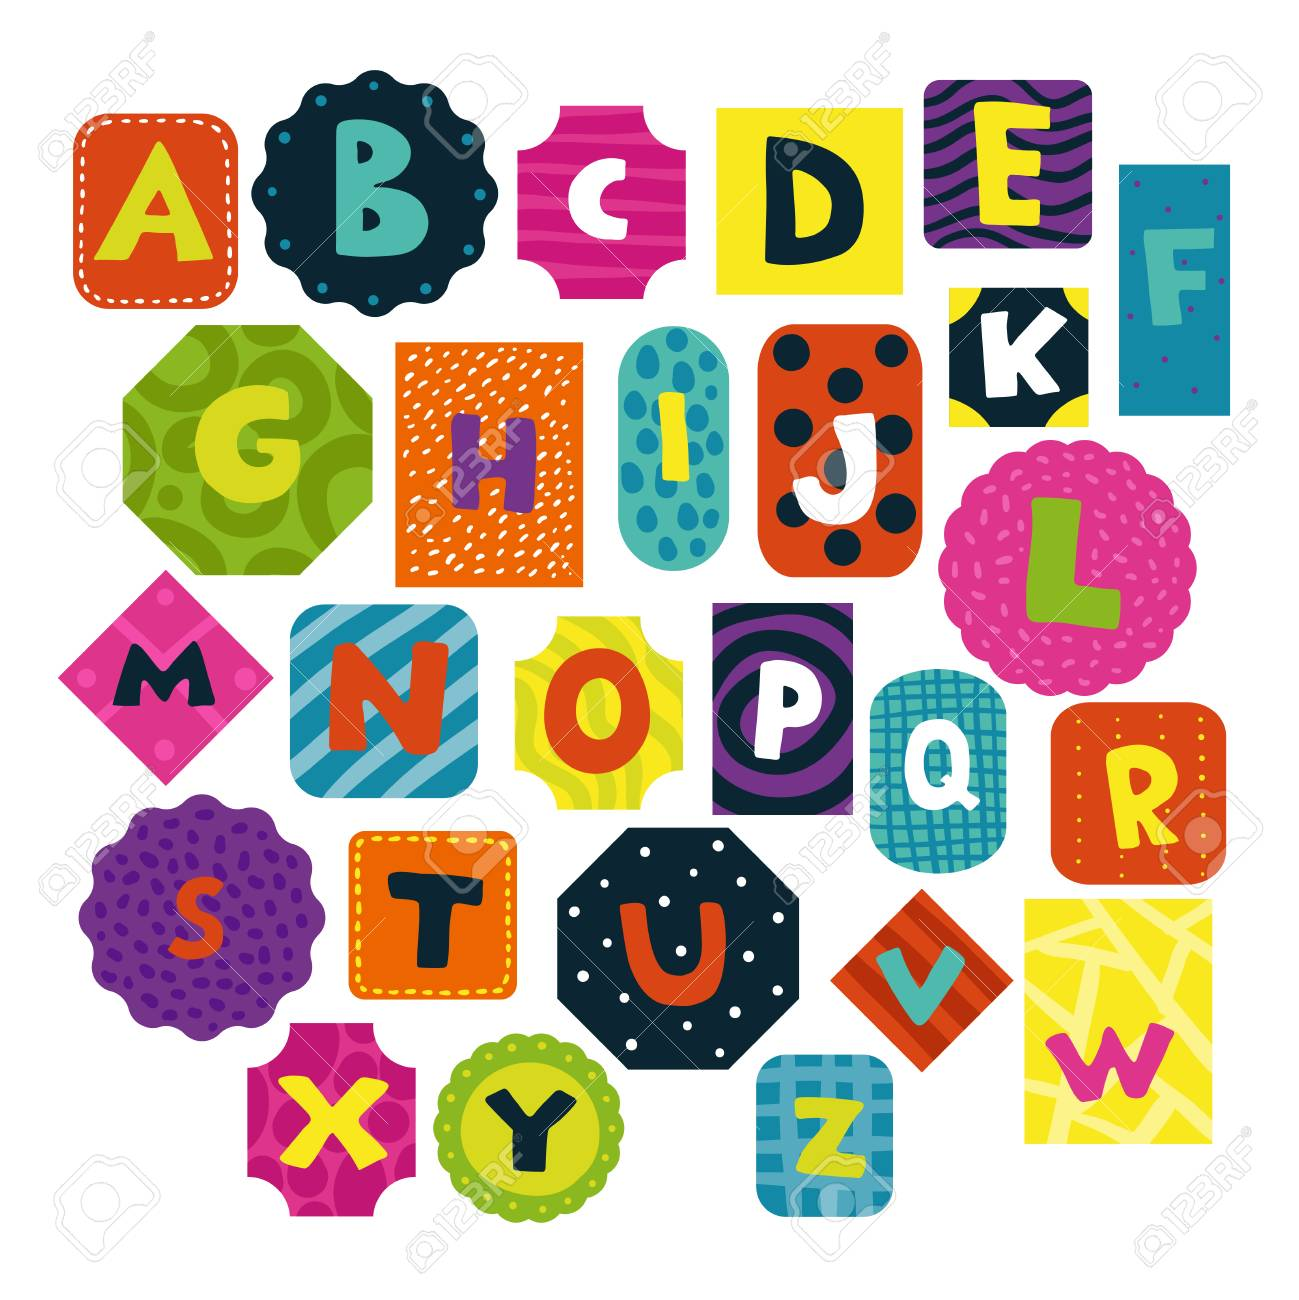 Children alphabet funny shaped and textured letters cards collection for preschoolers toddlers little kids isolated vector illustration - 100644096